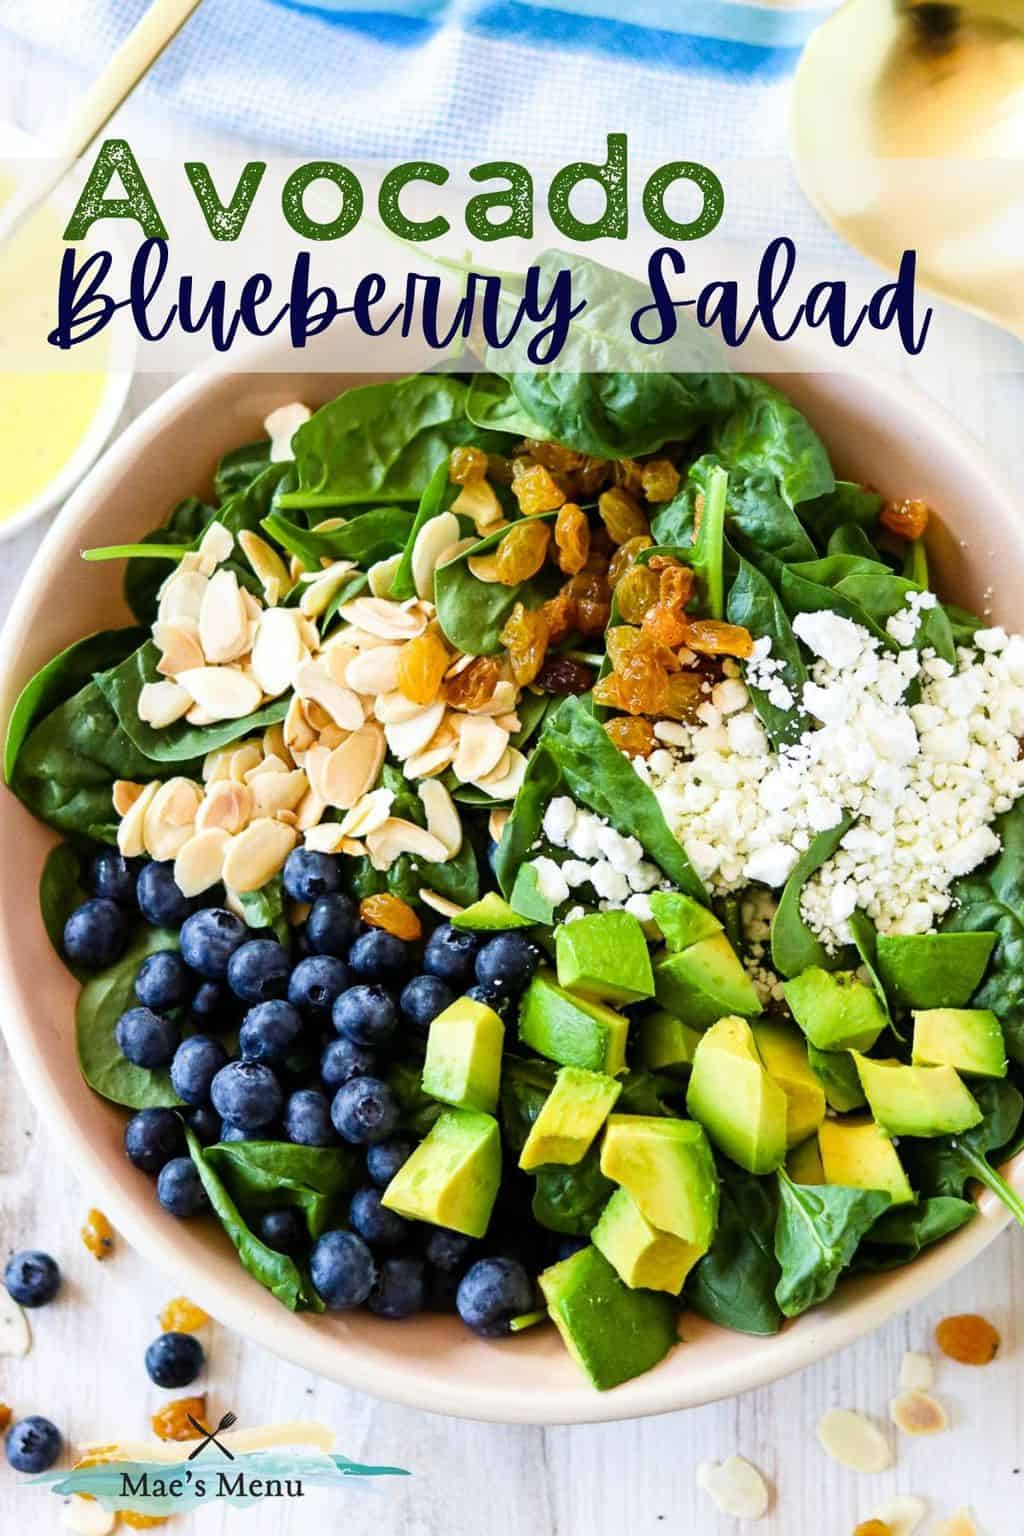 A pinterest pin for avocado blueberry salad with an up-close overhead shot of the salad in a bowl